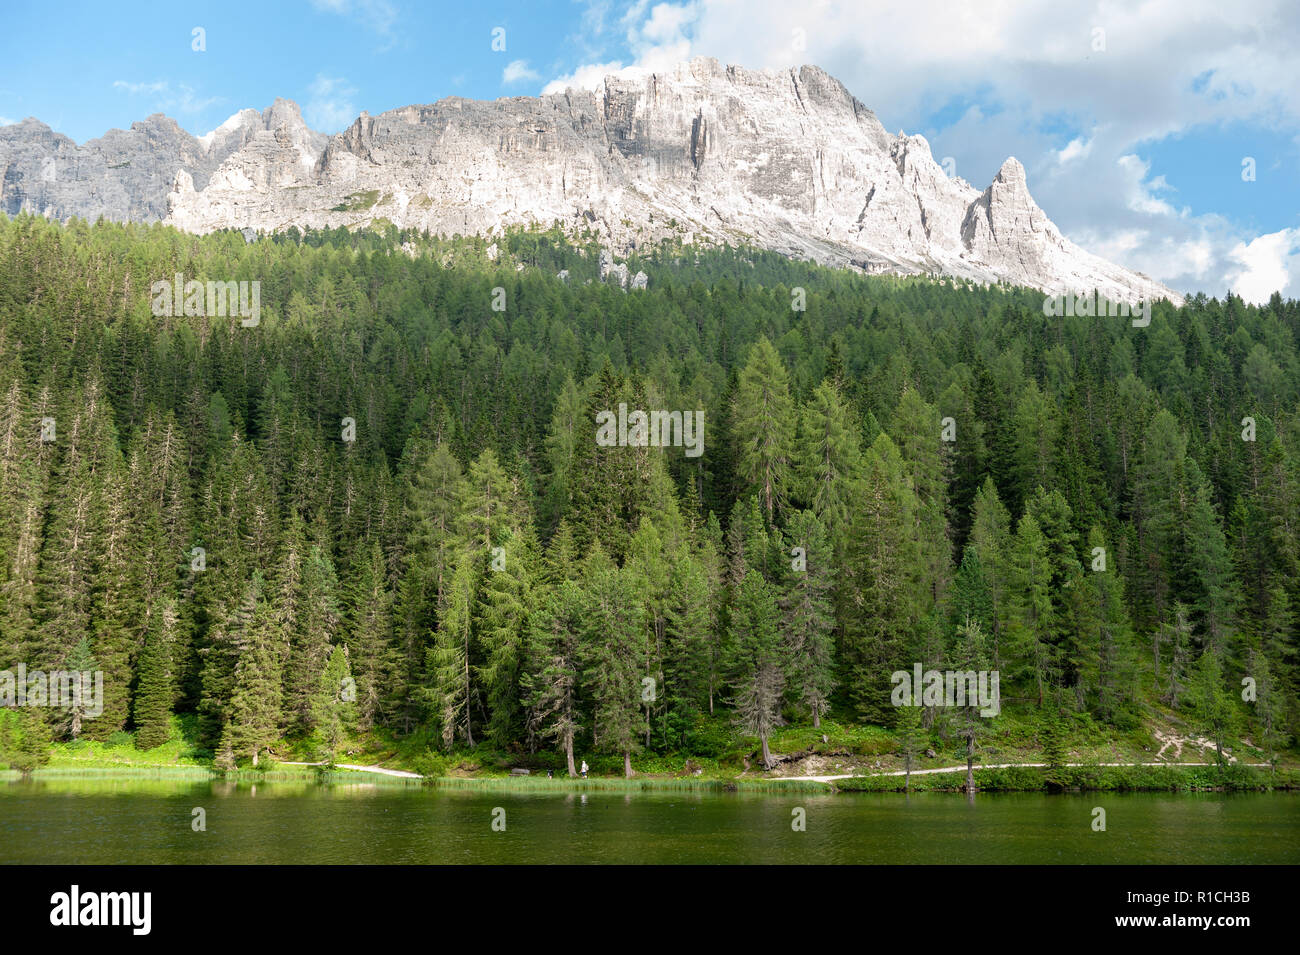 Lago Misurina in the Italian Dolomites - Stock Image